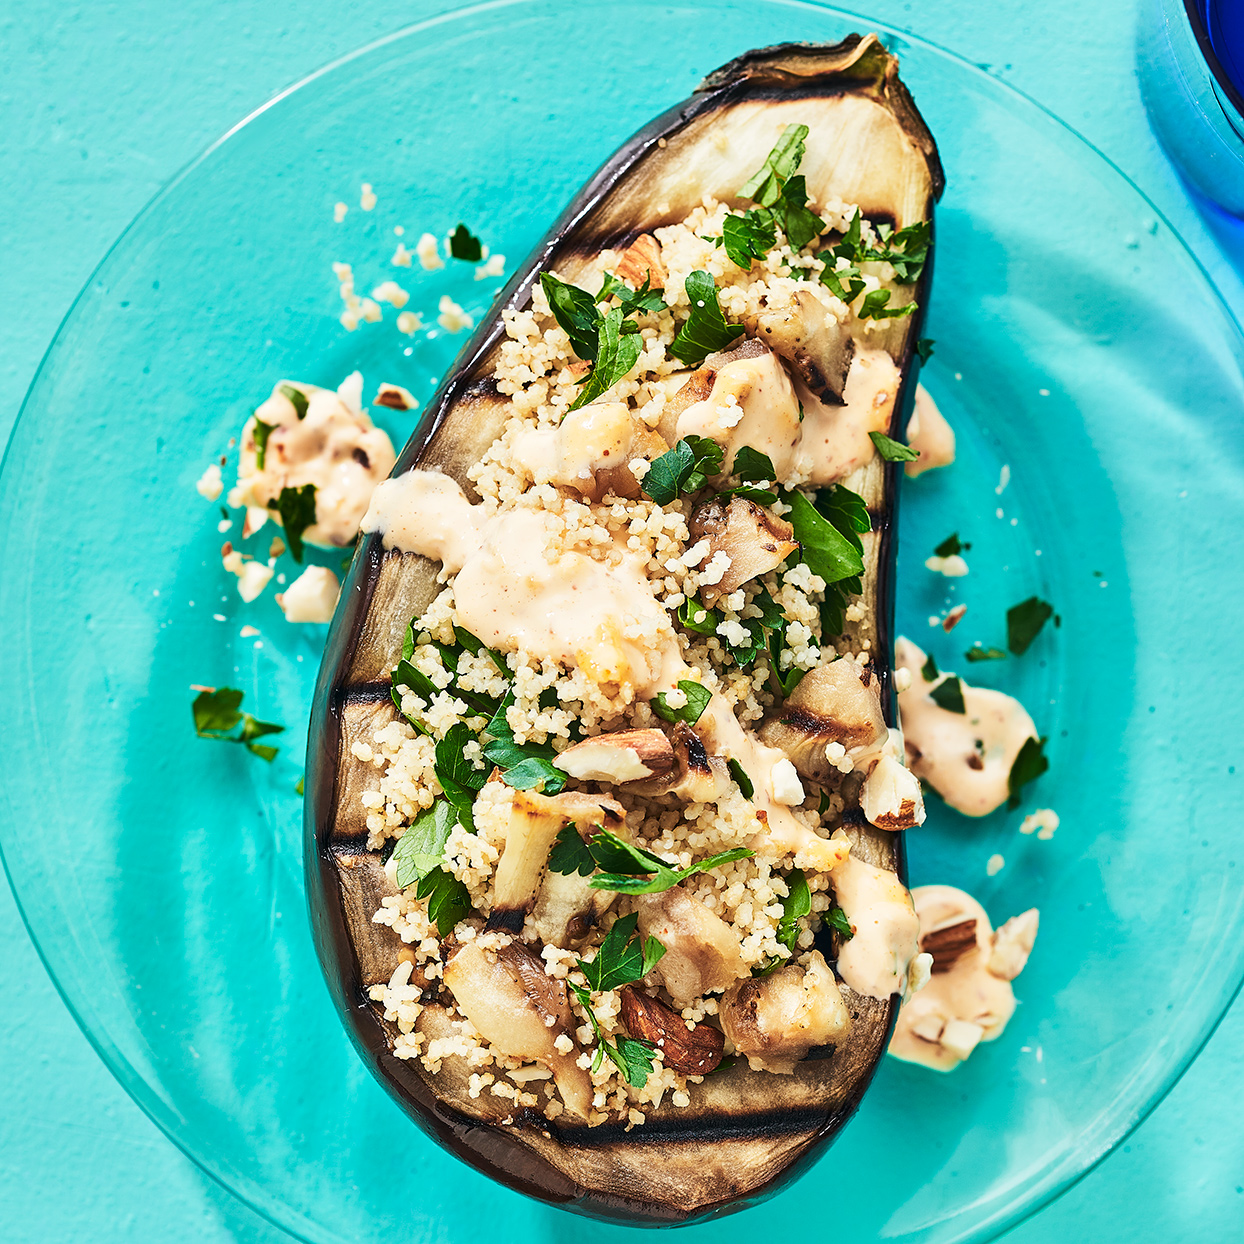 Stuffed Eggplant with Couscous & Almonds